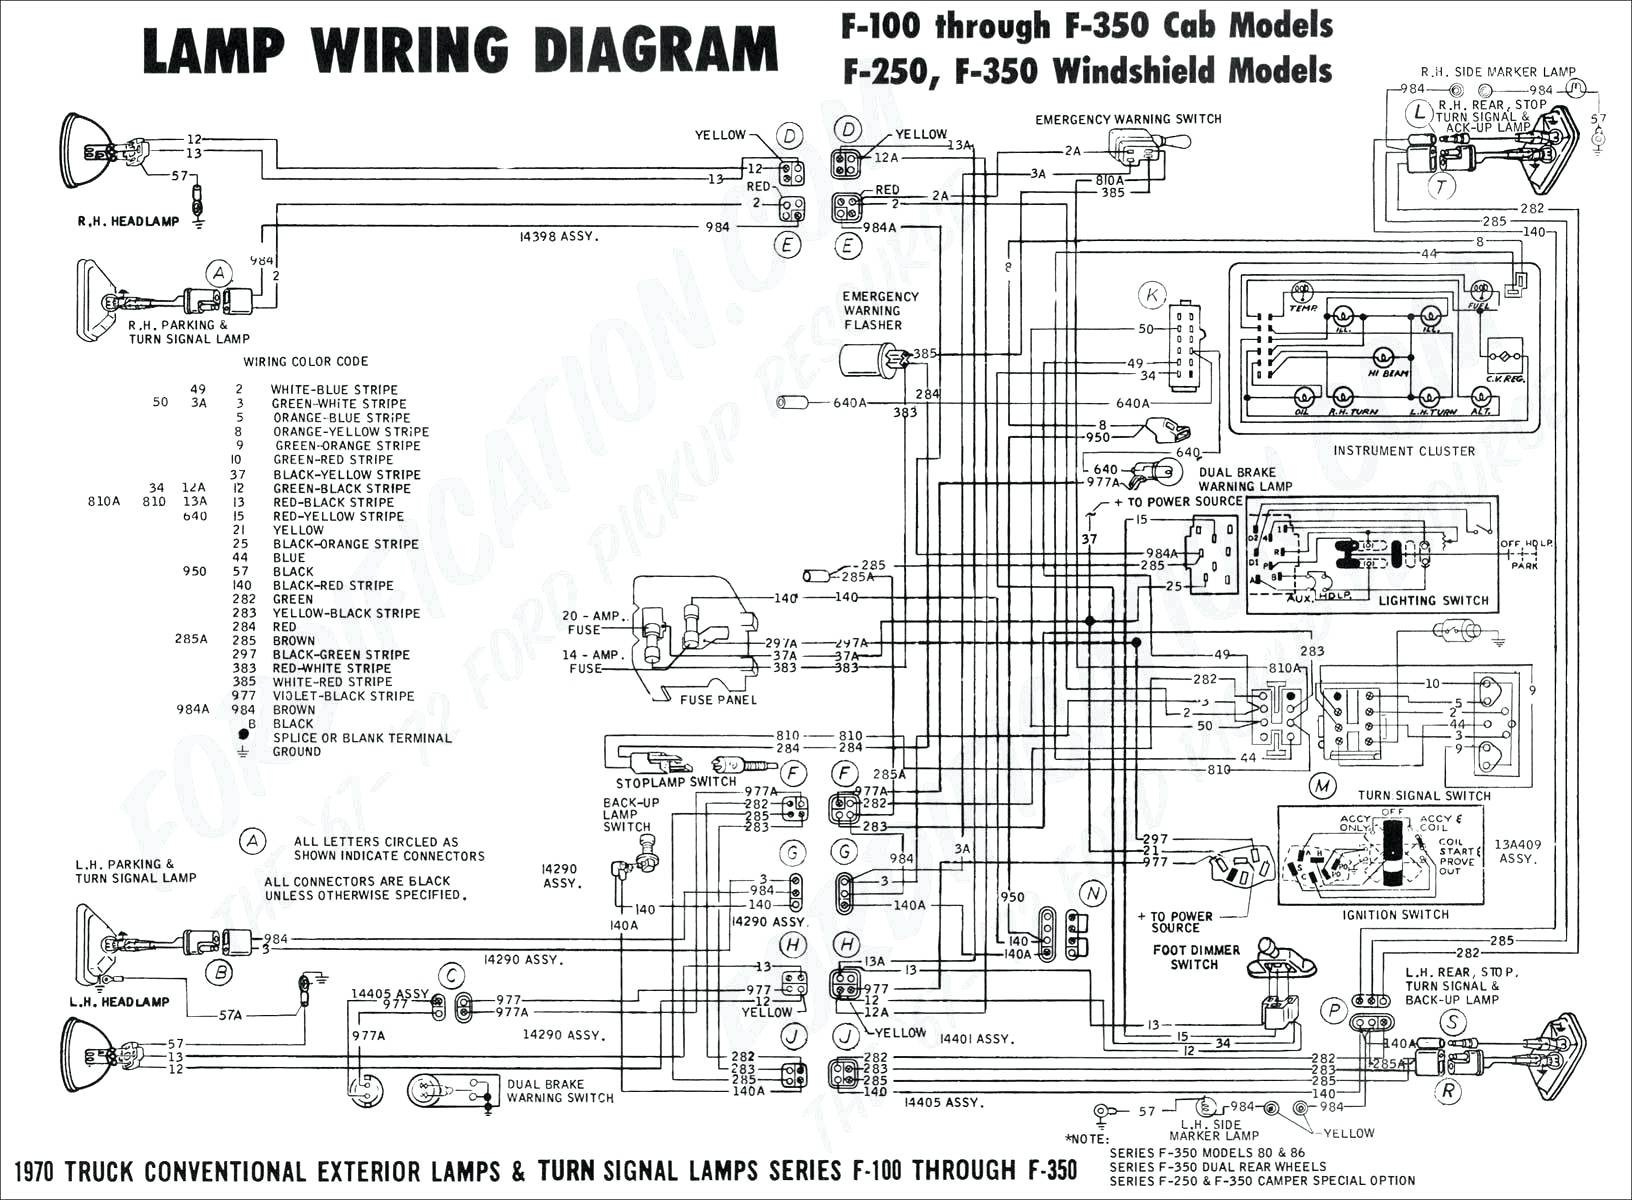 Wabco Hydraulic Abs Fault Codes